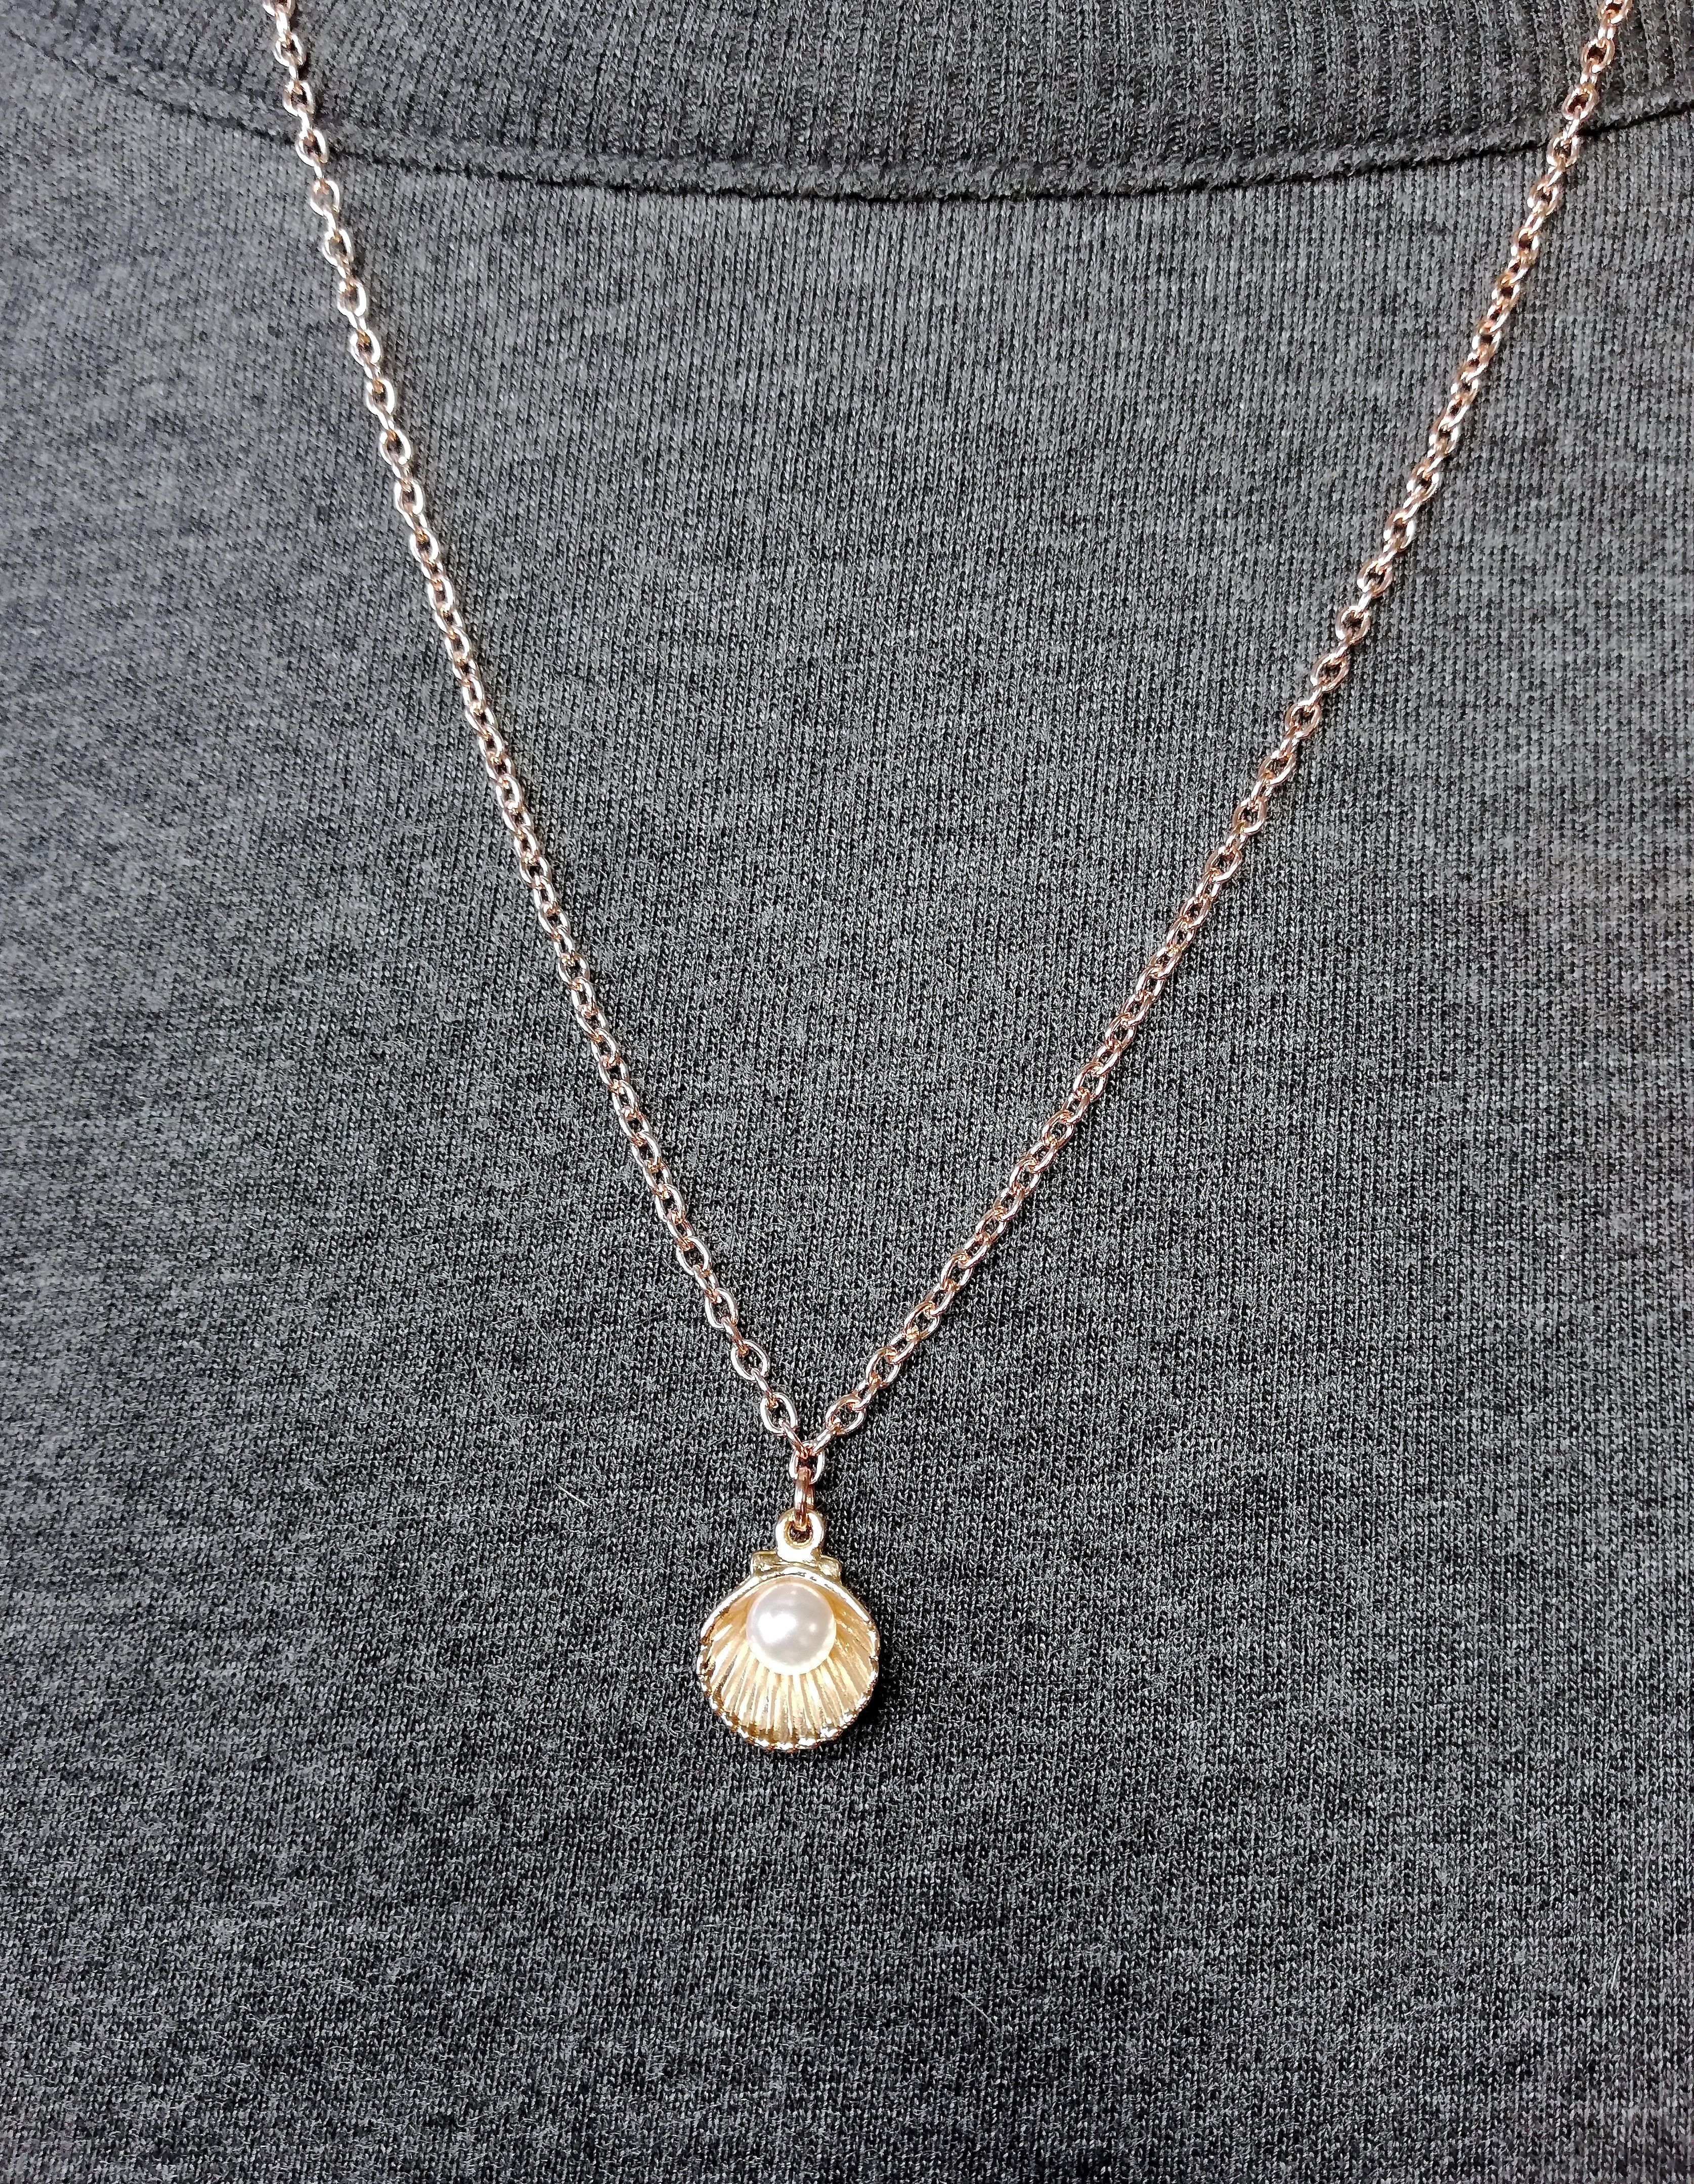 bfef10b00f7fd Dainty Rose Gold Oyster Clam Shell Pearl Necklace Minimalist ...